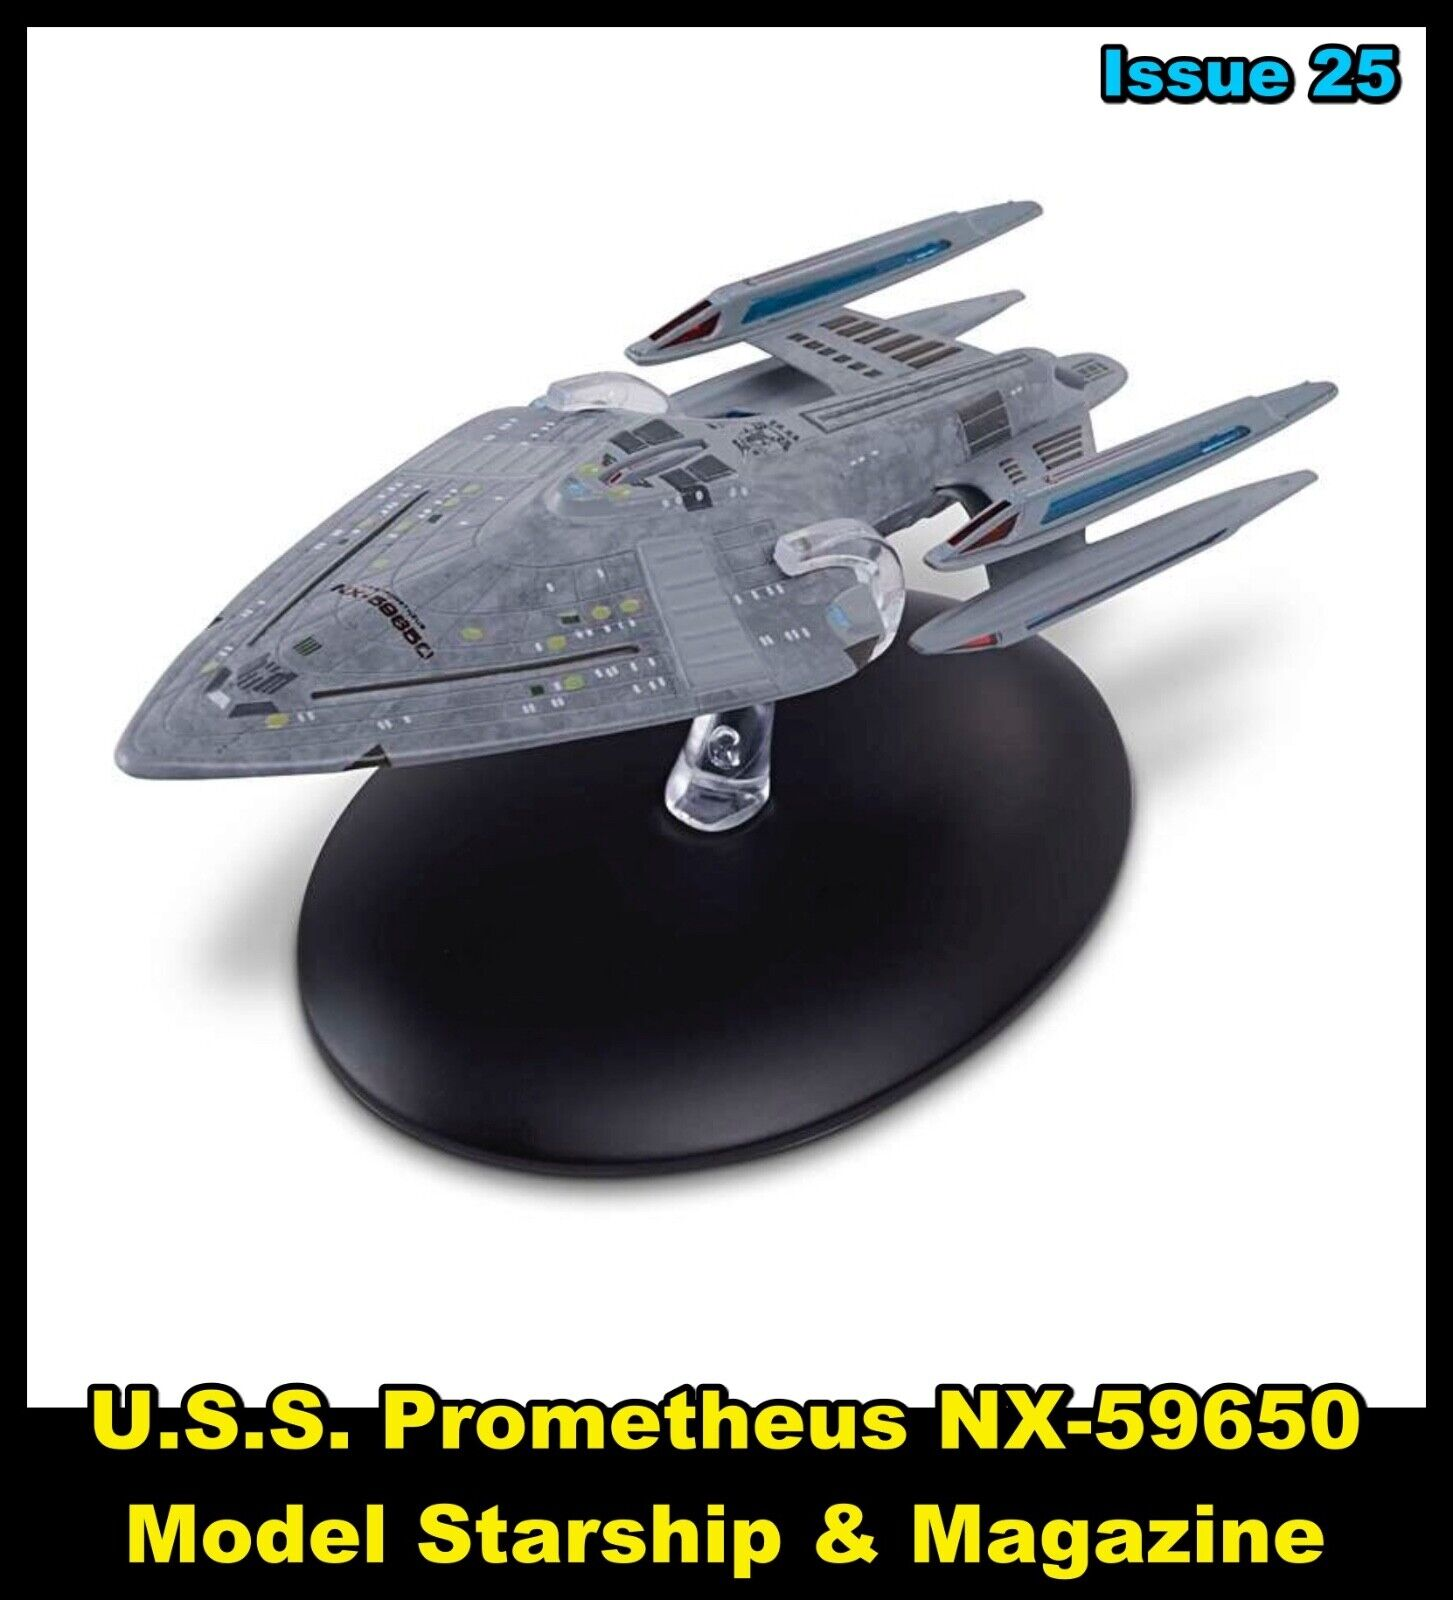 Issue 25: USS Prometheus Starship Model (NX-5965